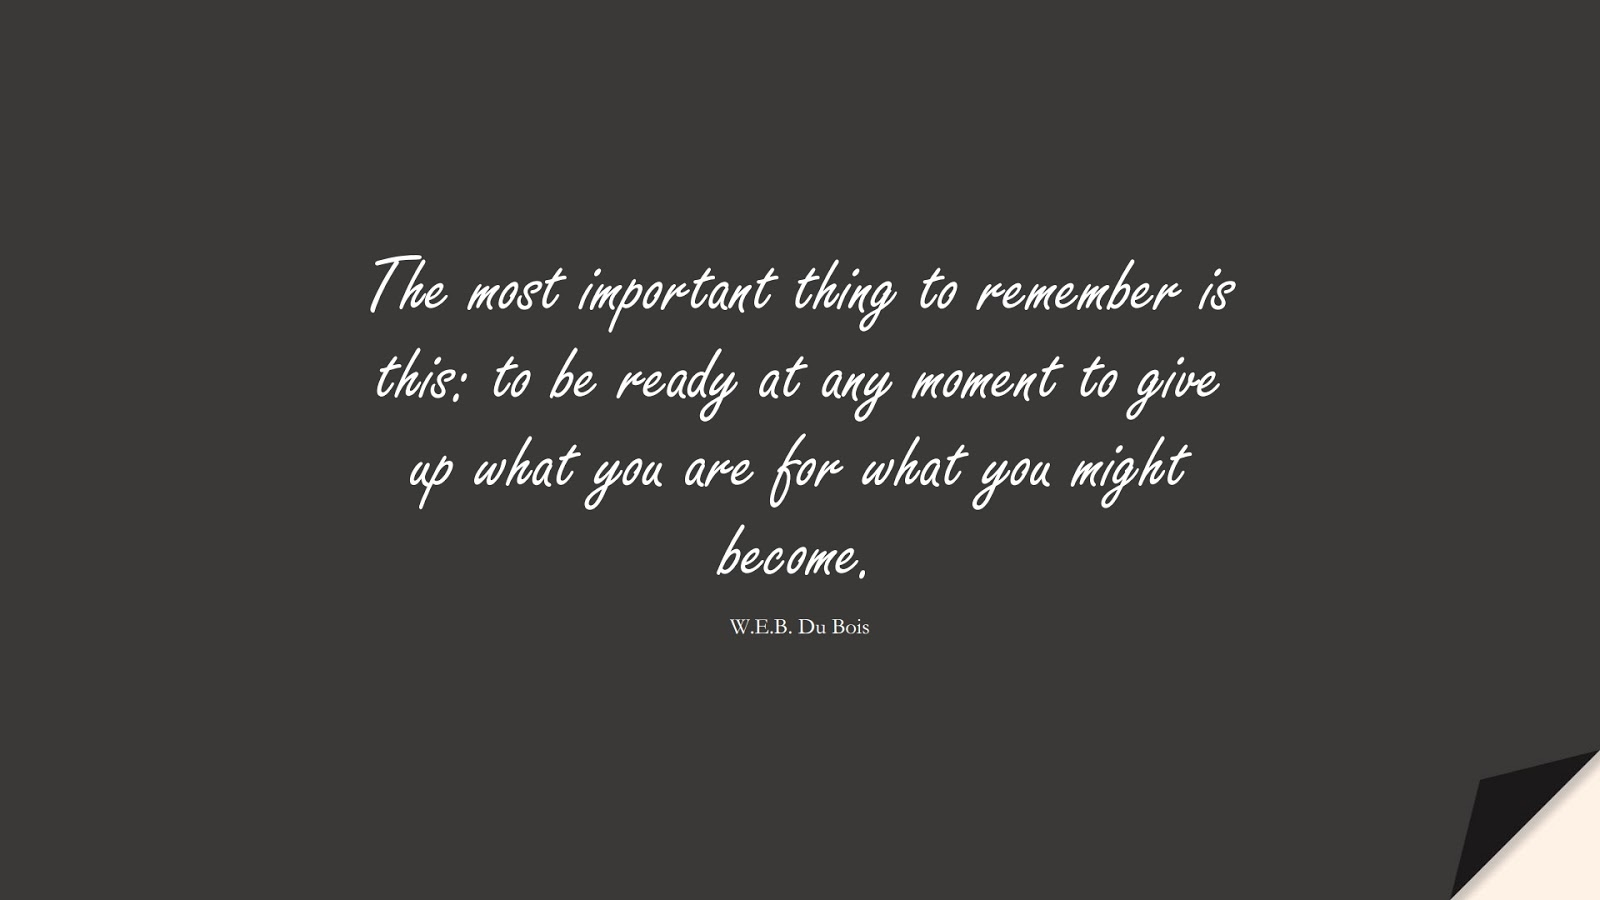 The most important thing to remember is this: to be ready at any moment to give up what you are for what you might become. (W.E.B. Du Bois);  #ChangeQuotes